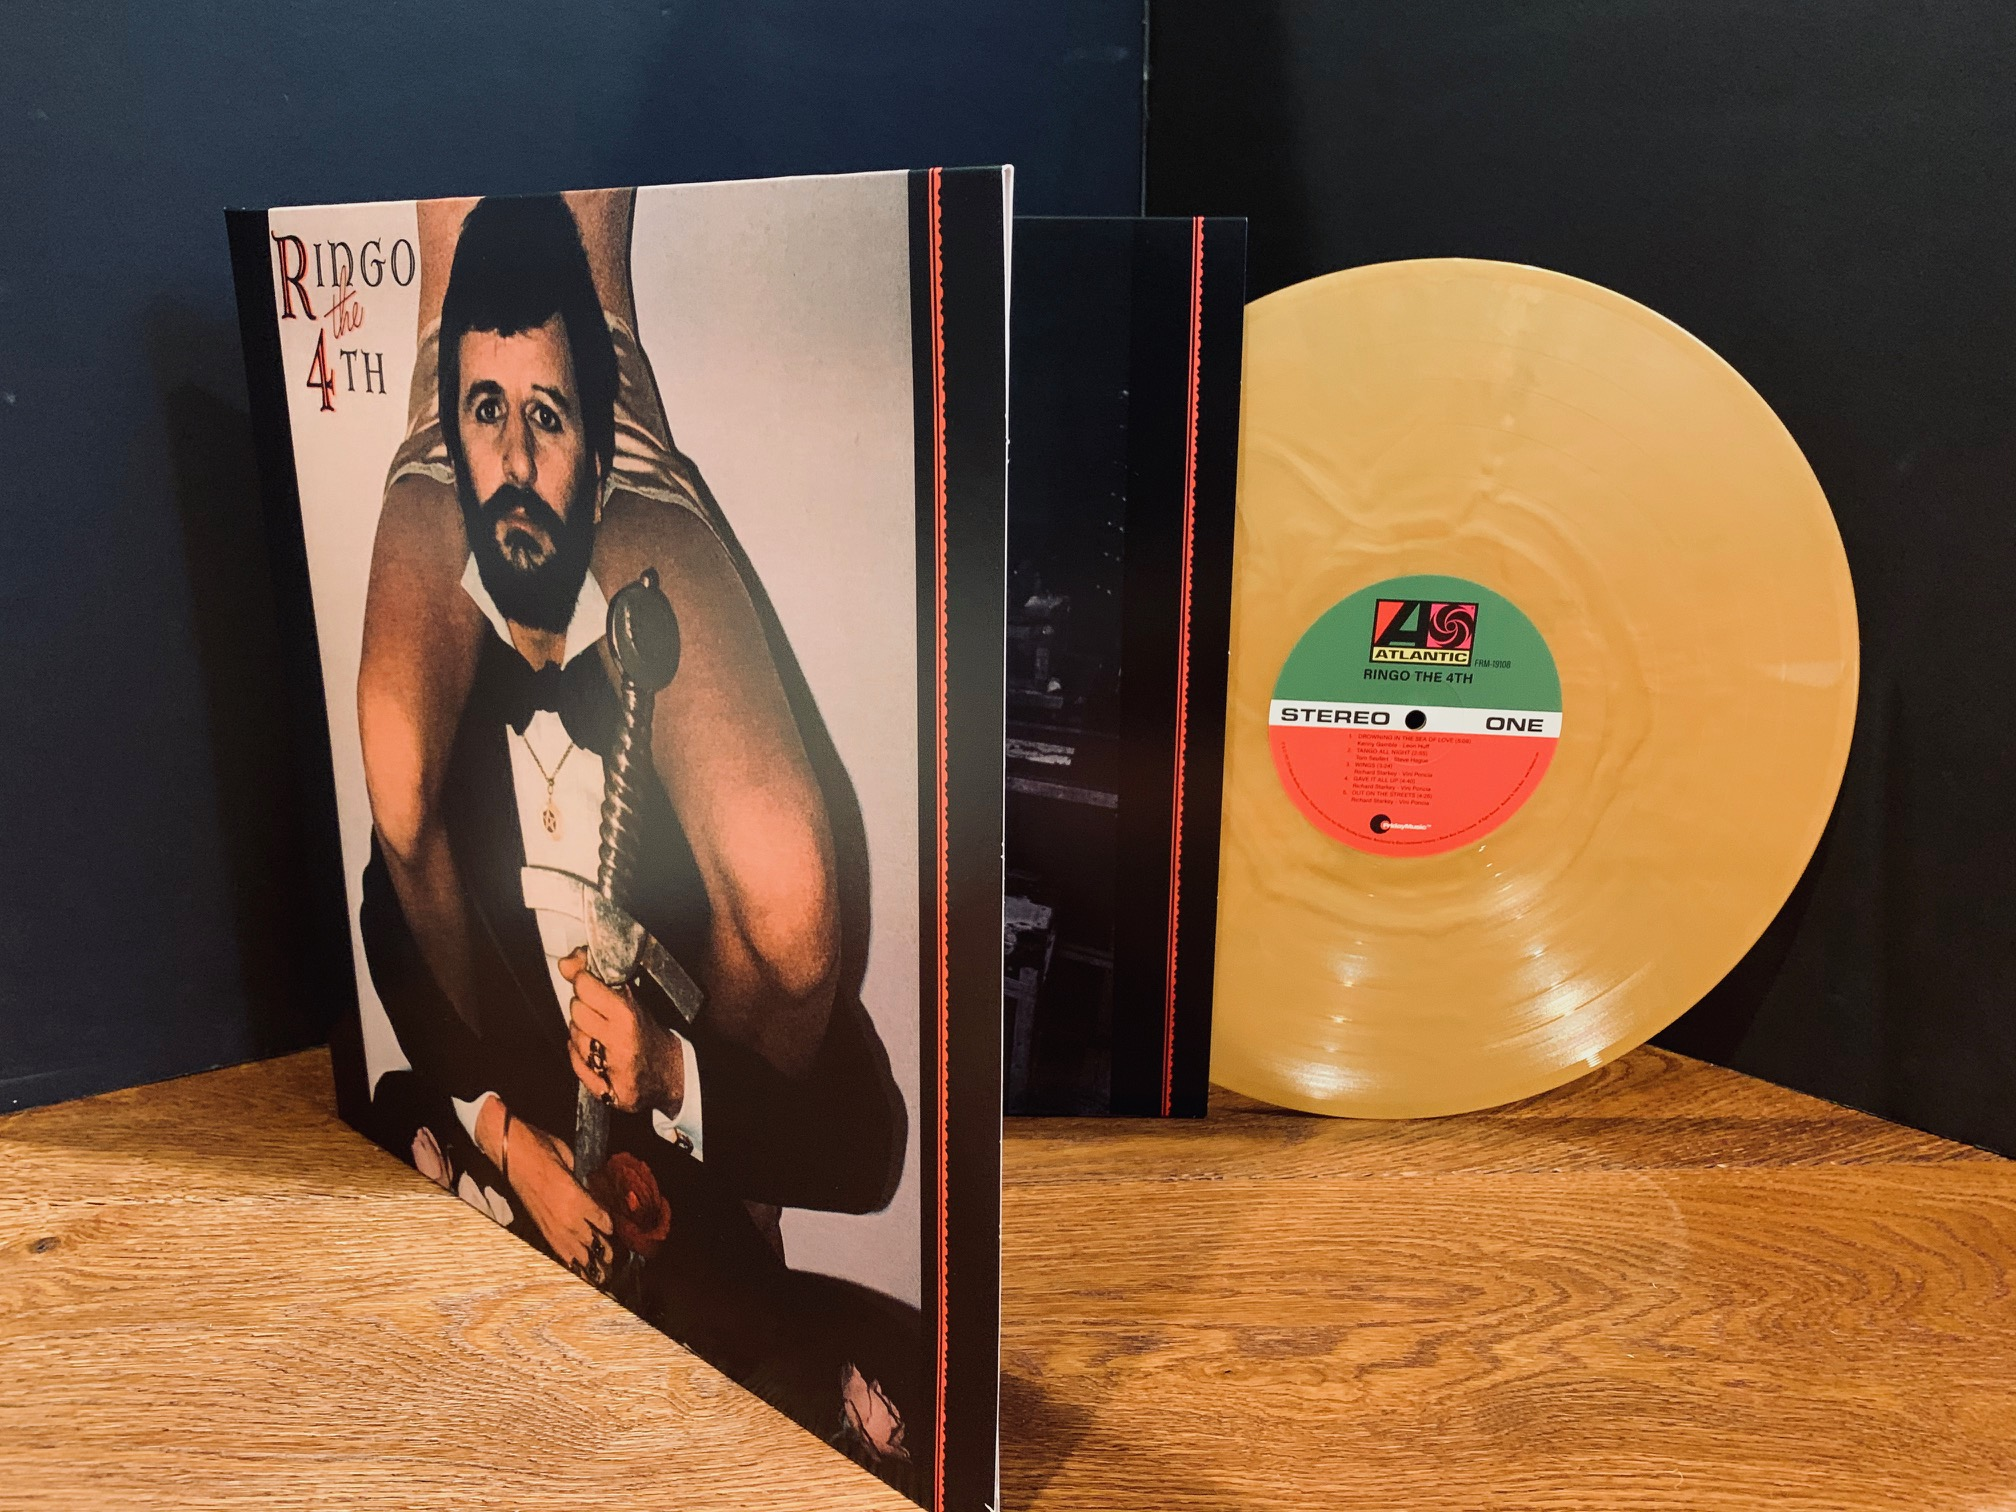 Ringo Starr - Ringo The 4th (180 Gram Gold Vinyl / Limited Anniversary Edition / Gatefold Cover)